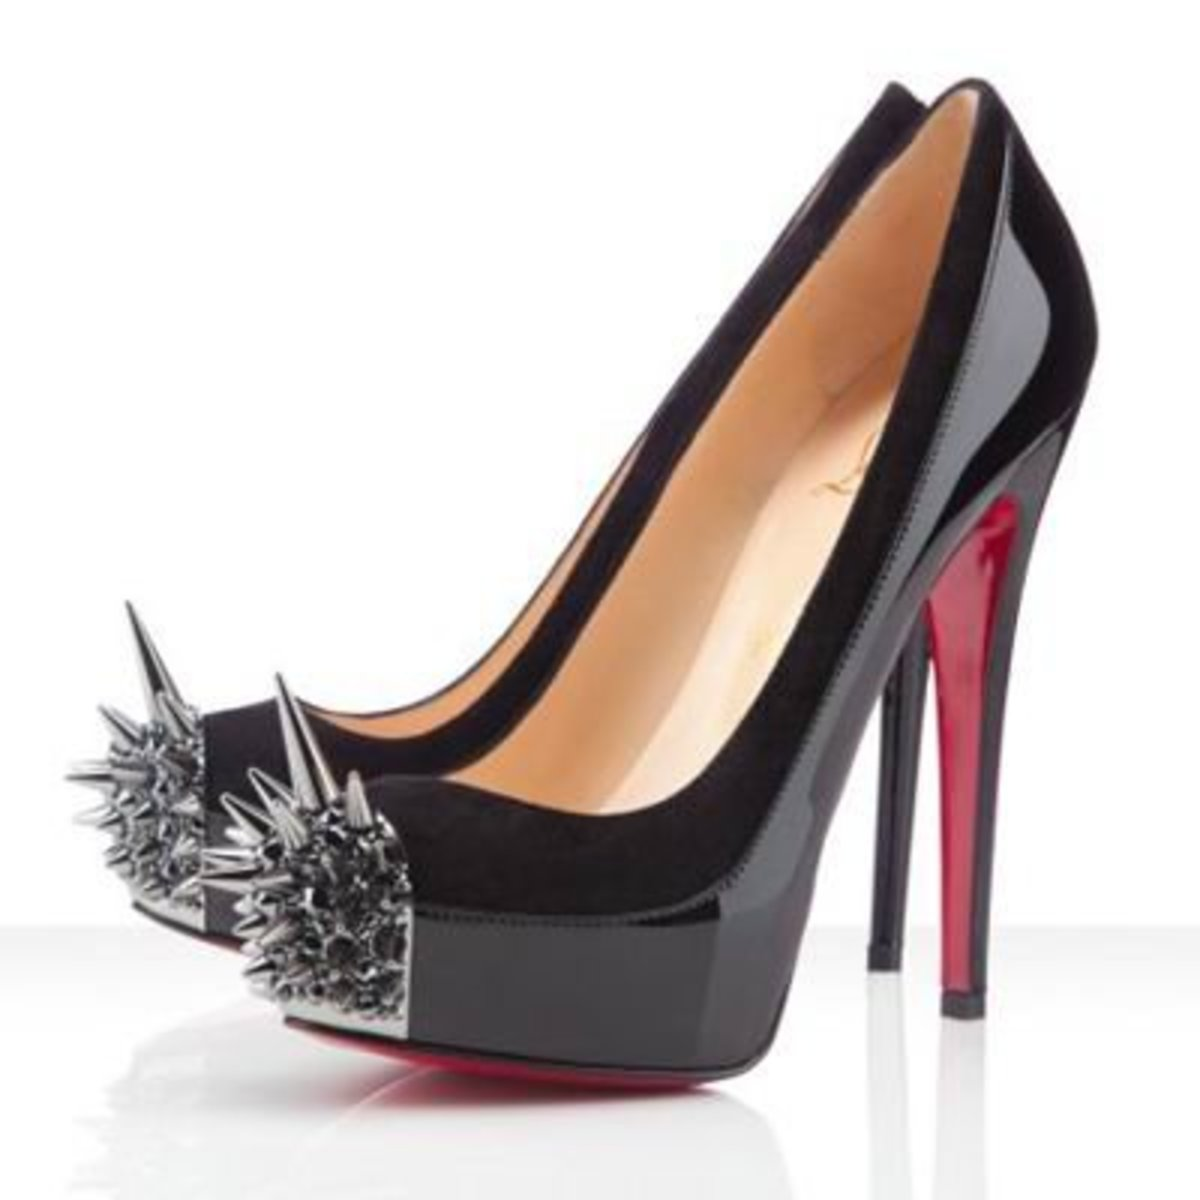 Spiked High Heels - Metal Spike Heels with Studs